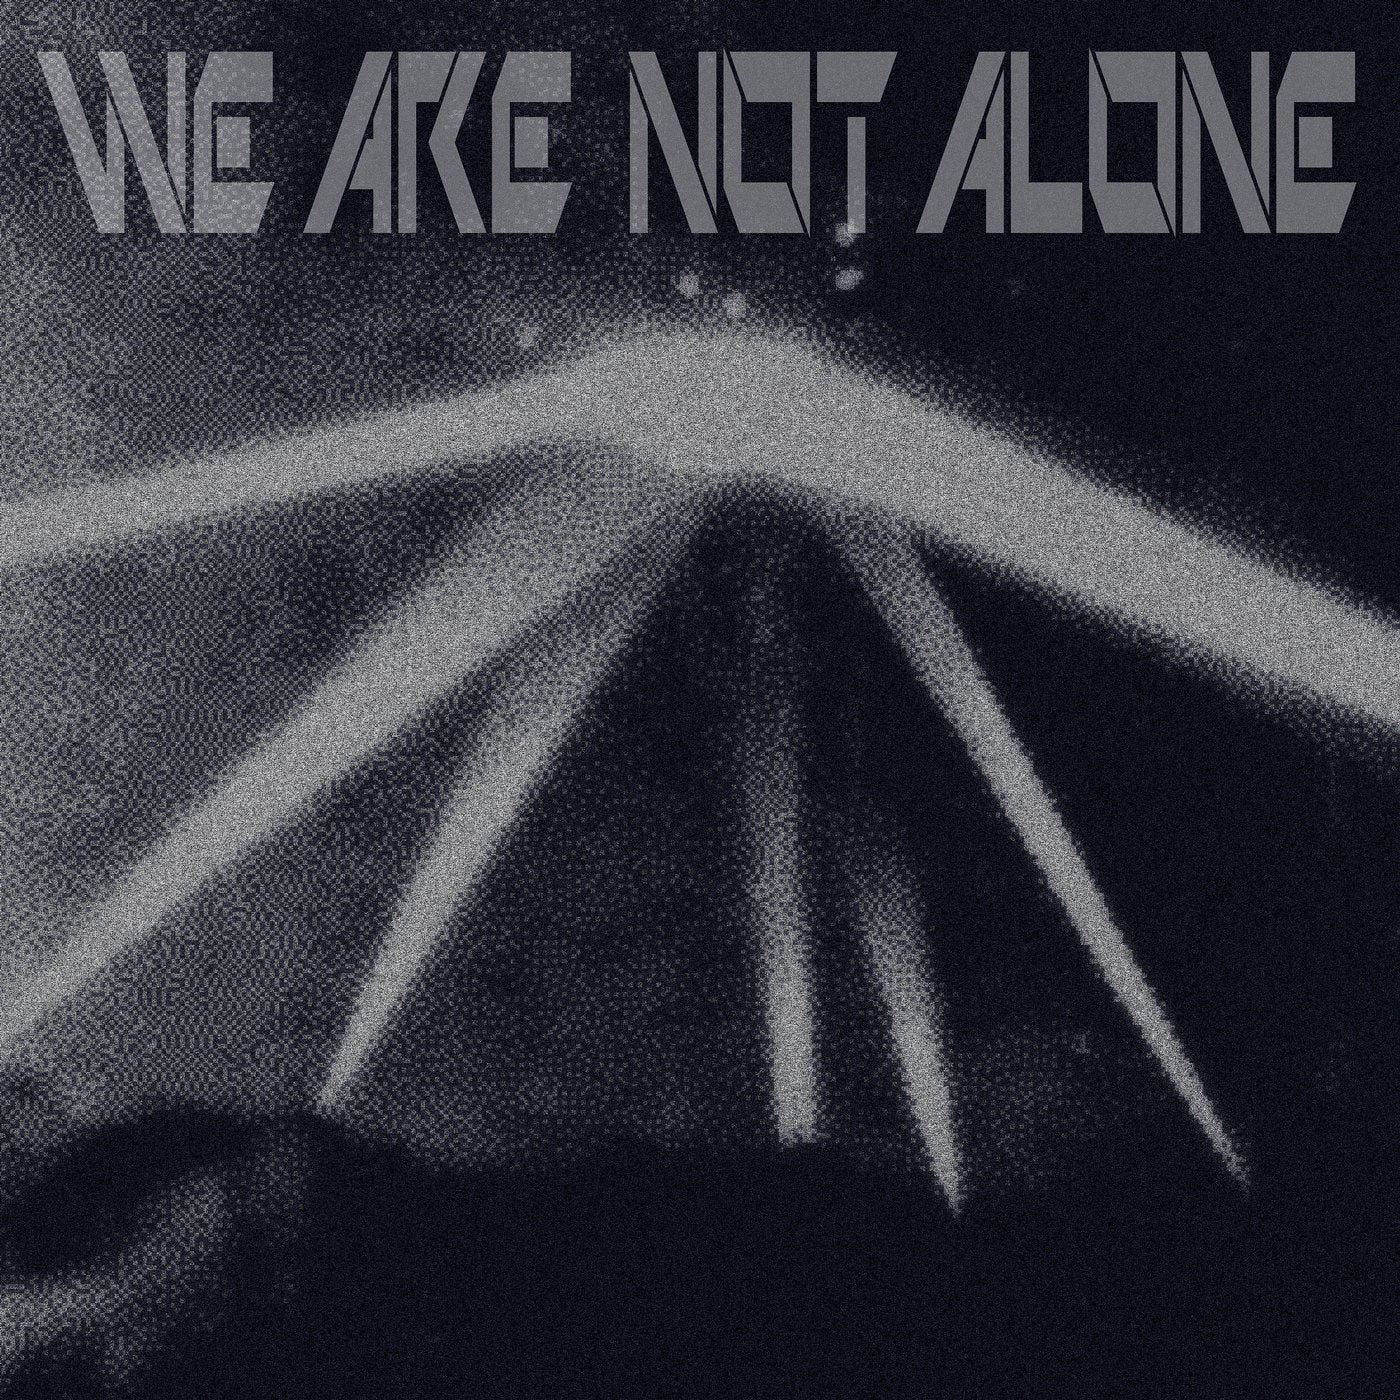 Download We Are Not Alone Pt. 1 on Electrobuzz